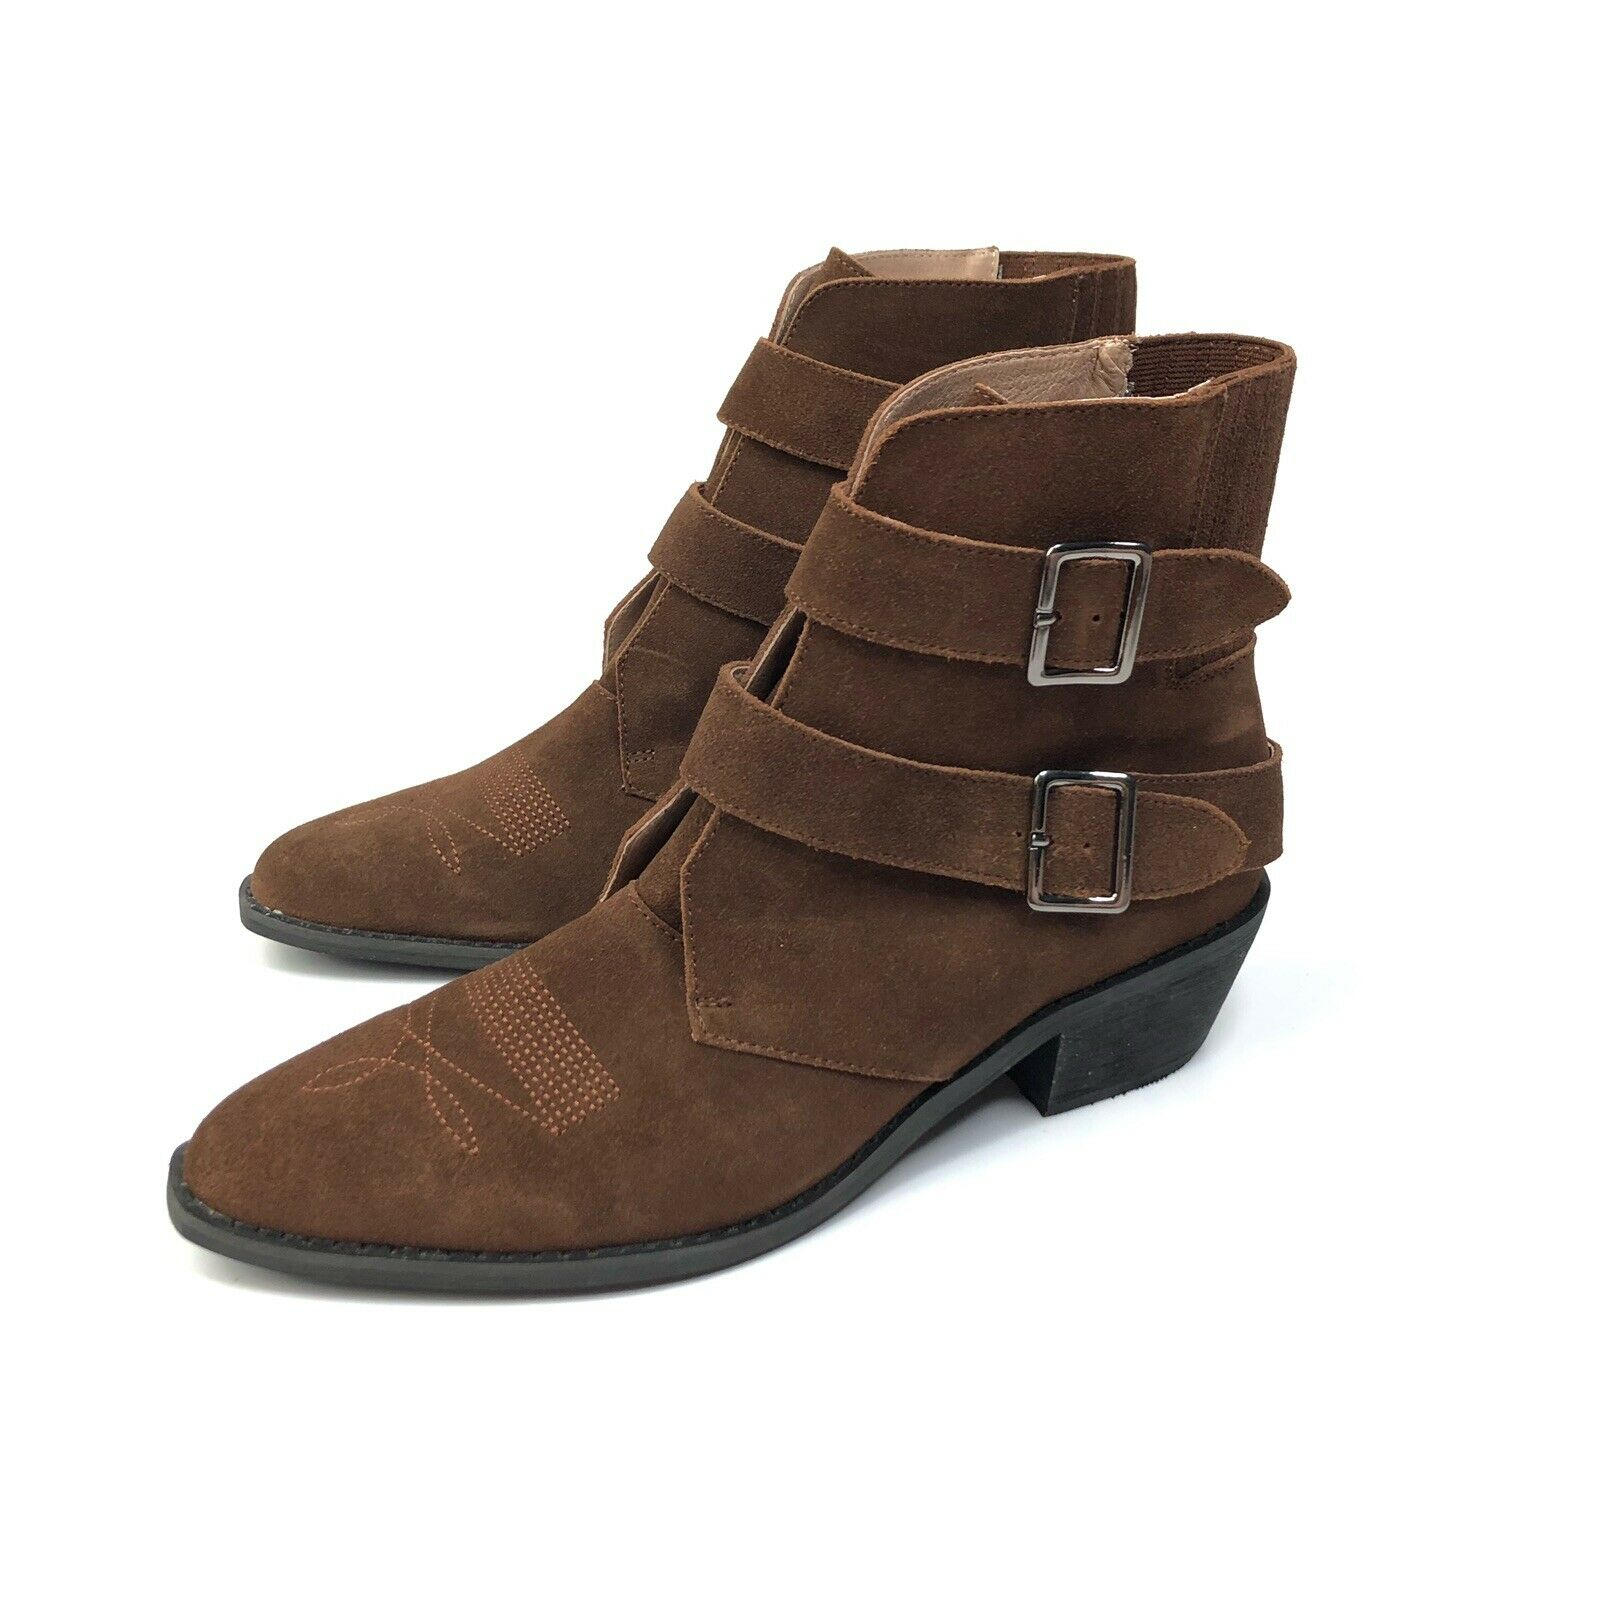 Anthropologie Brown Suede Western Style Buckled Ankle Booties Boots Size 9